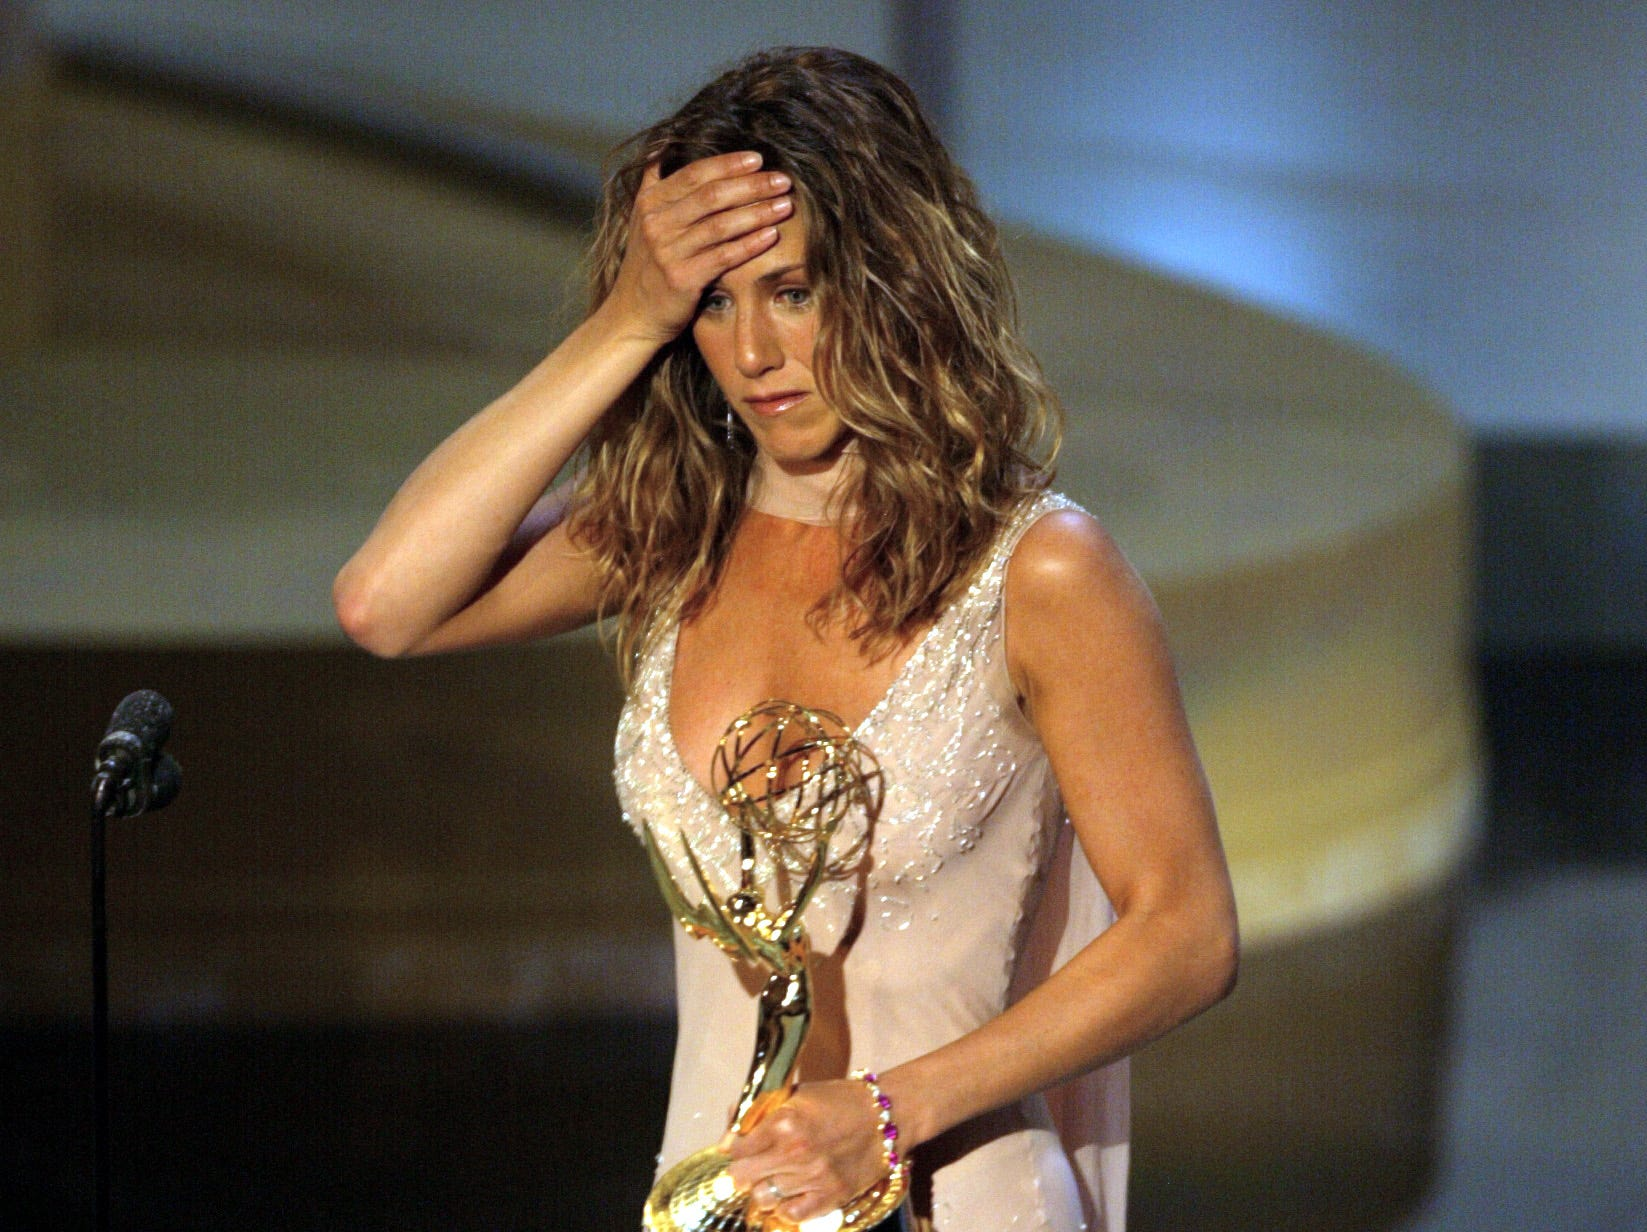 """That year, she won her first Emmy for lead actress on """"Friends."""" She was nominated for playing Rachel five times in all."""